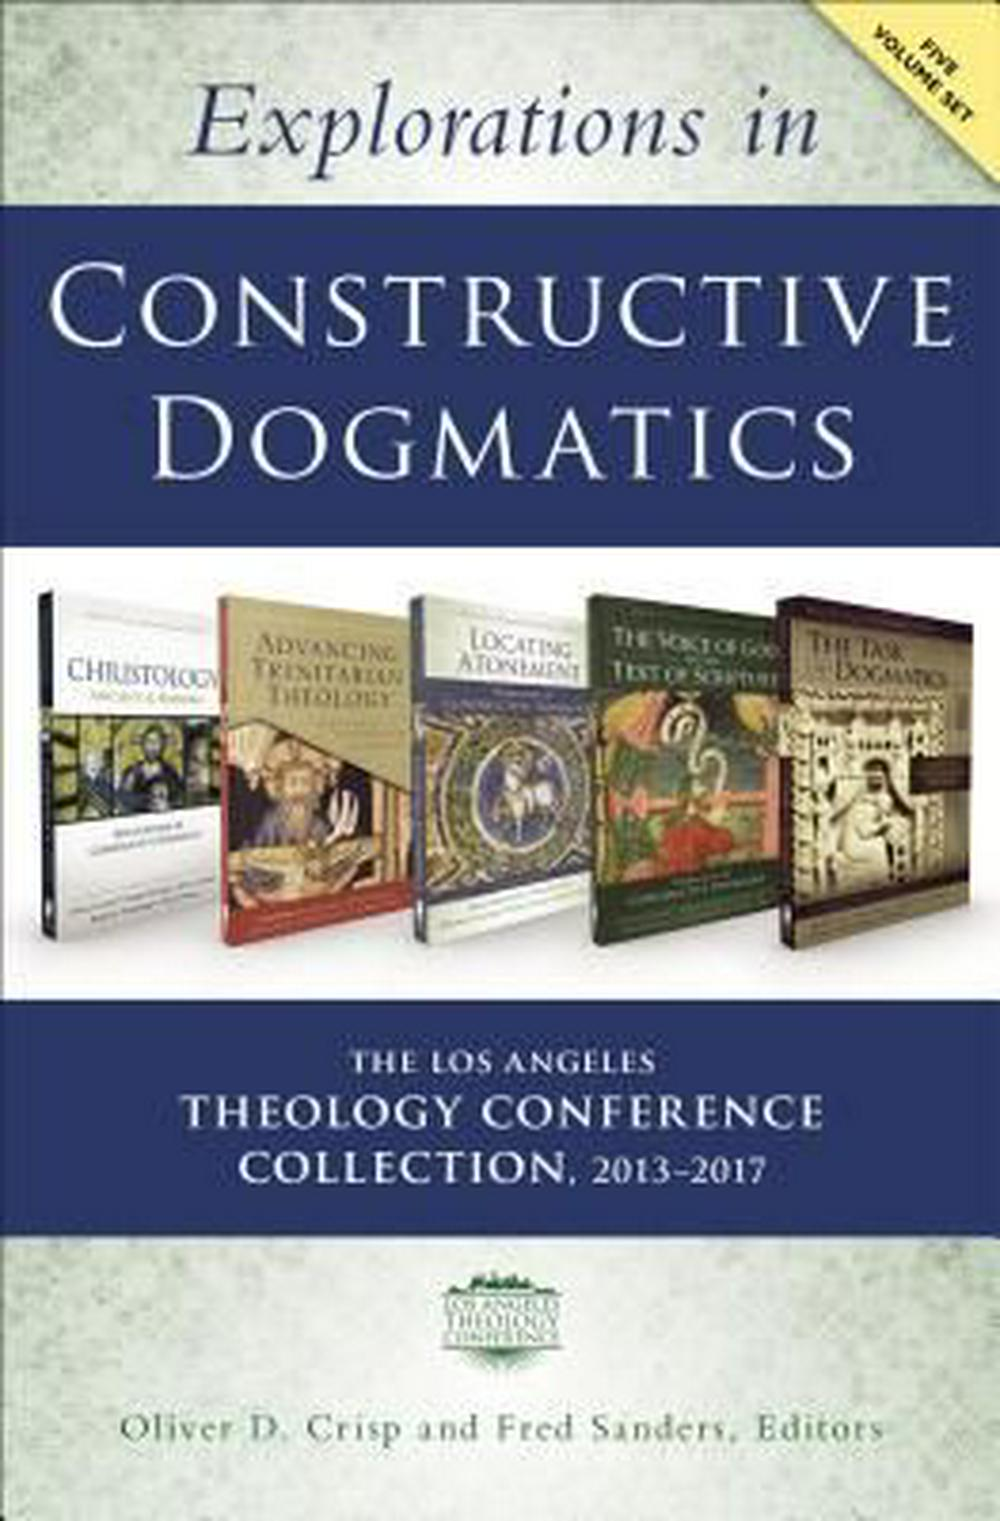 Explorations in Constructive Dogmatics: the Los Angeles Theology Conference Collection, 2013-2017 by Oliver D. Crisp, Fred Sanders, ISBN: 9780310538004